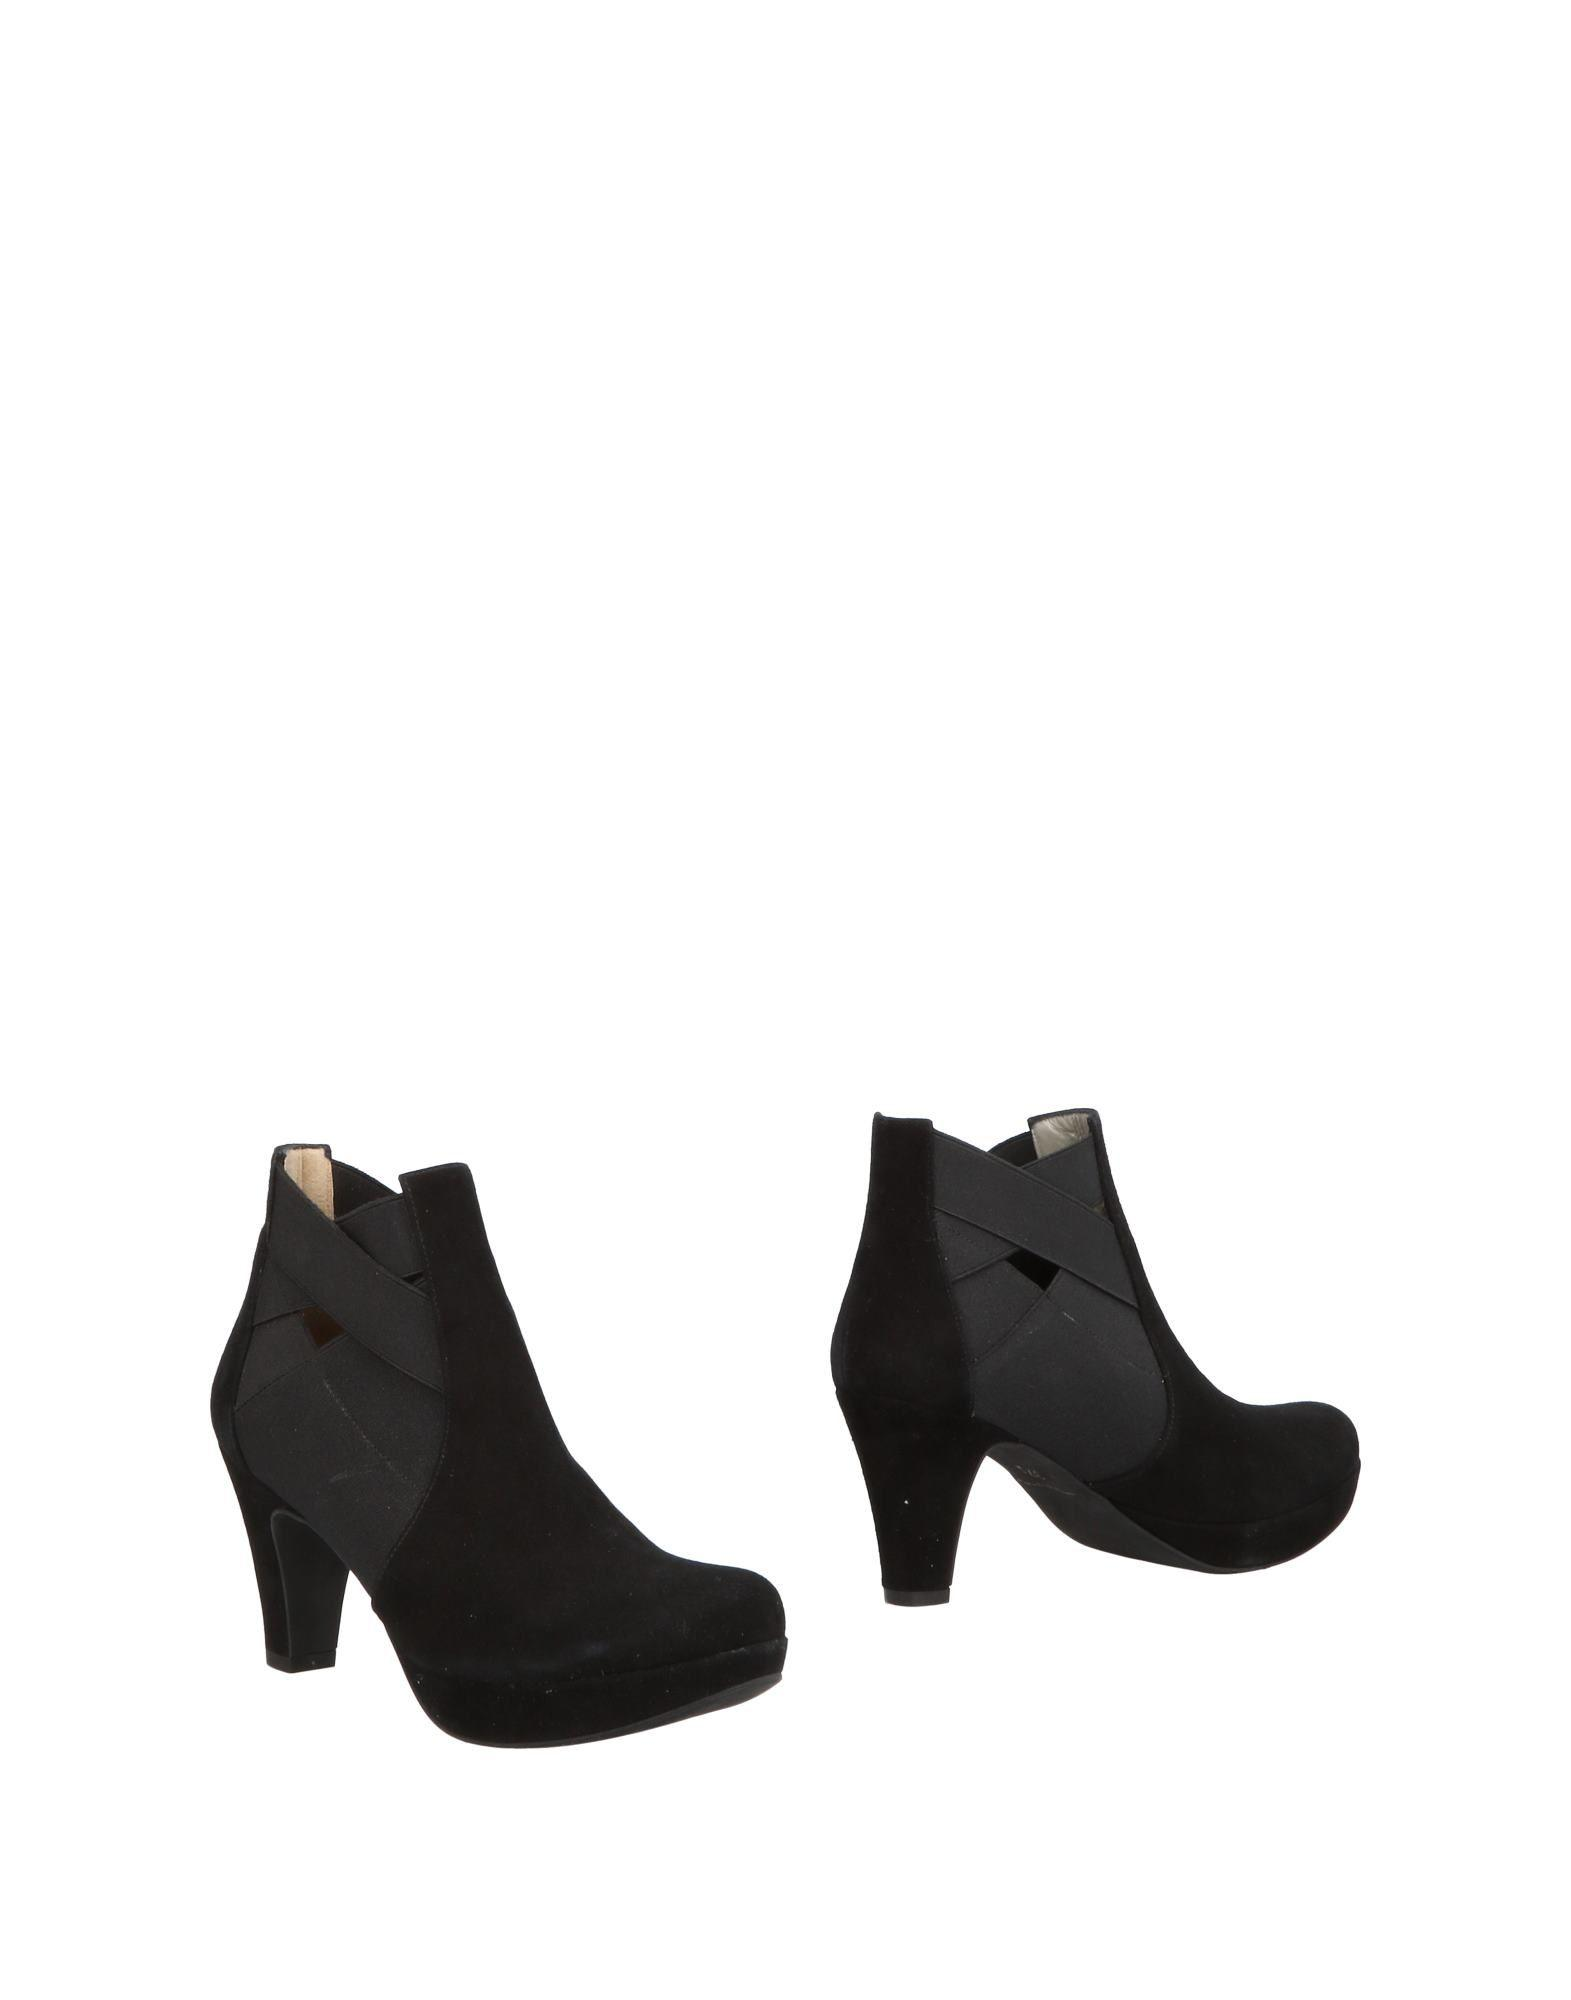 discount authentic shop for cheap price SILVIA ROSSI Ankle boots saBpWT4i